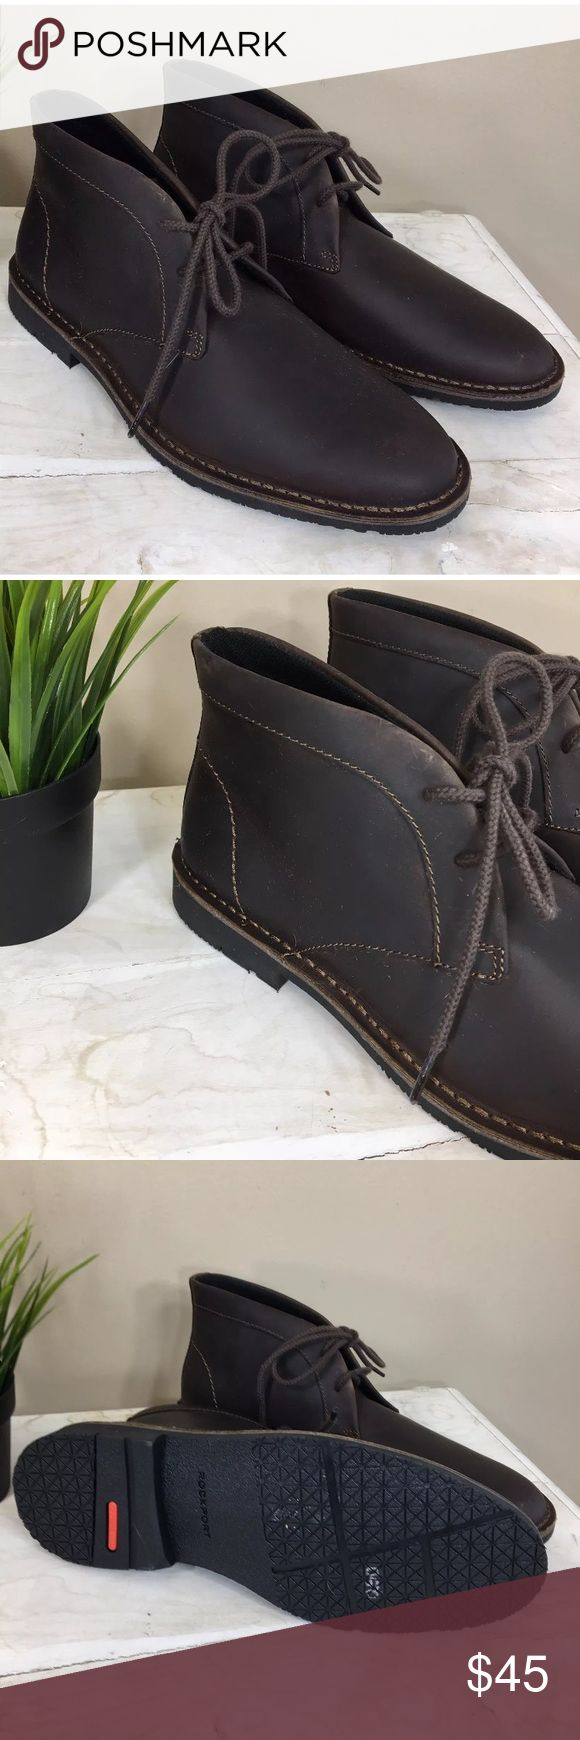 """Men's Rockport Chukka Boot Brown Sz 9 NEW Men's Rockport Chukka Boot  New without Box  SZ 9  Leather Imported Rubber sole Shaft measures approximately 4.5"""" from arch Heel measures approximately 1"""" Platform measures approximately 0.5"""" Three-eyelet chukka style with full-welt stitching and traction outsole Treat yourself to a more luxurious and comfortable Chukka boot with these leather Rockport lace-ups.. Rockport Shoes Chukka Boots"""